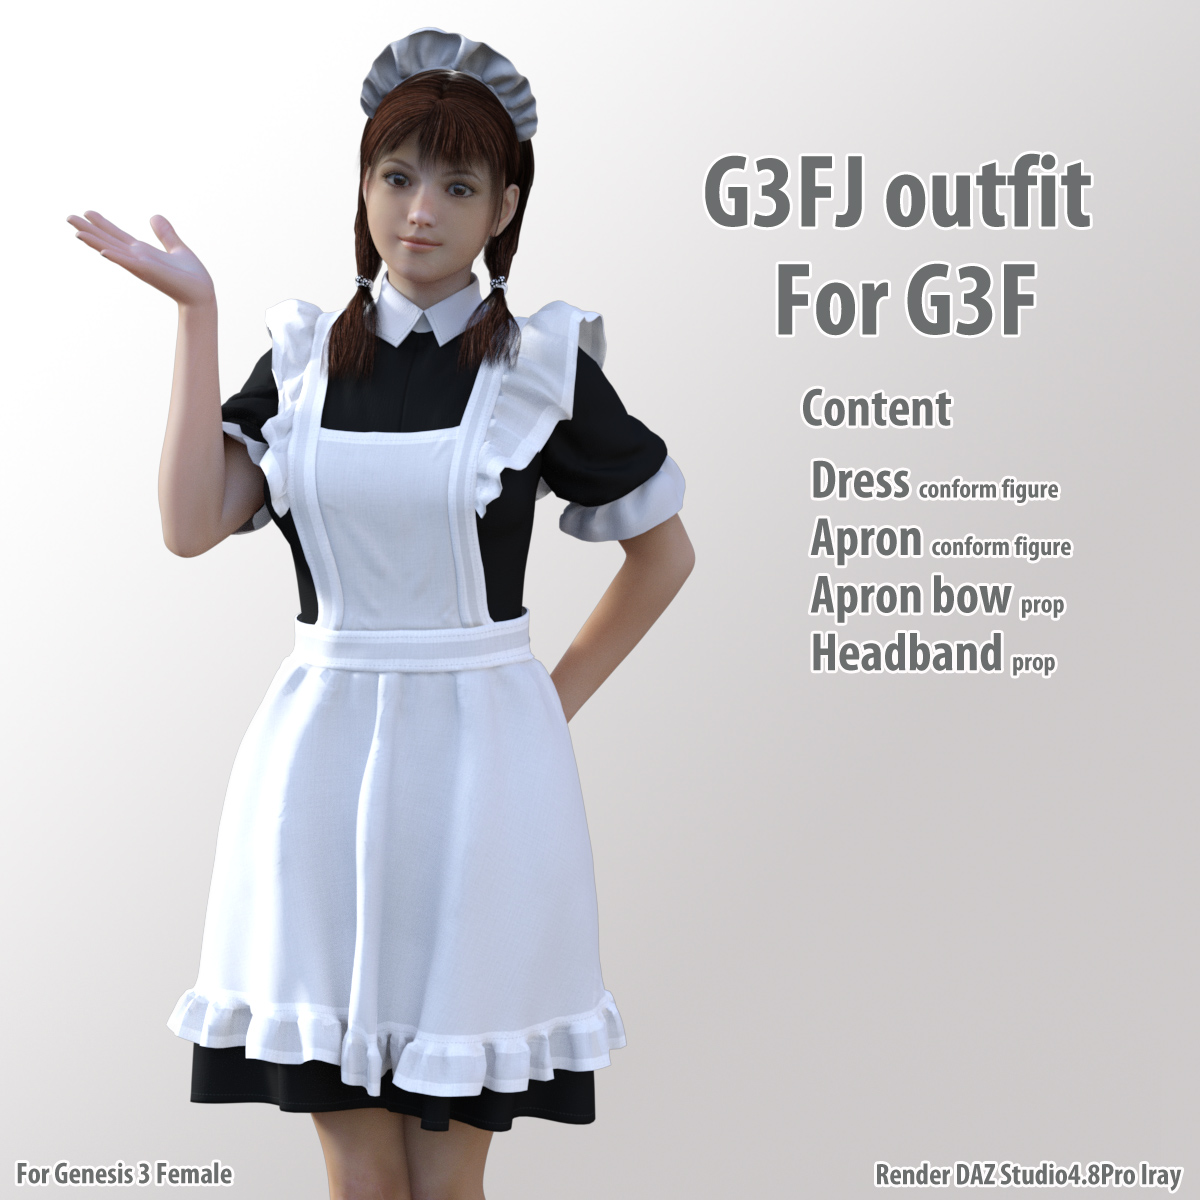 G3FJ outfit for G3F